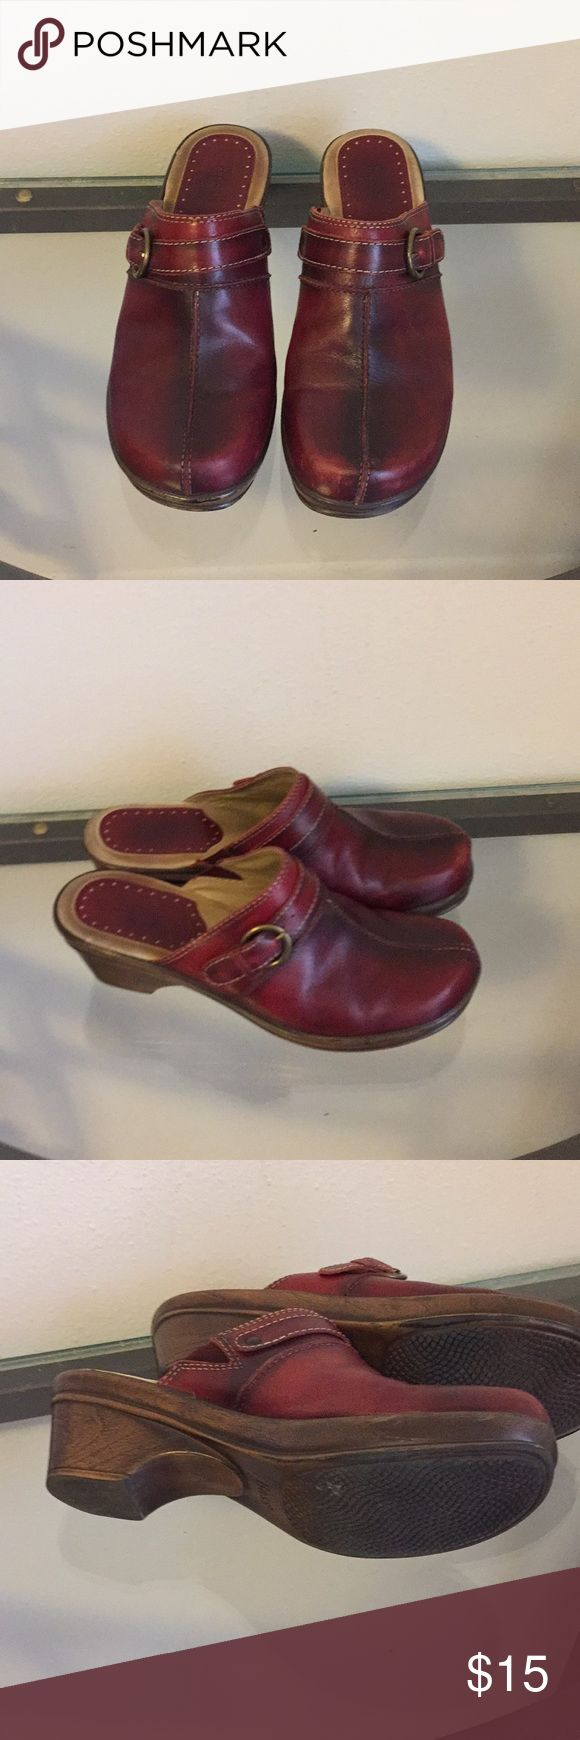 Bass shoes Bass shoes in excellent condition cranberry red color Bass Shoes Mules & Clogs